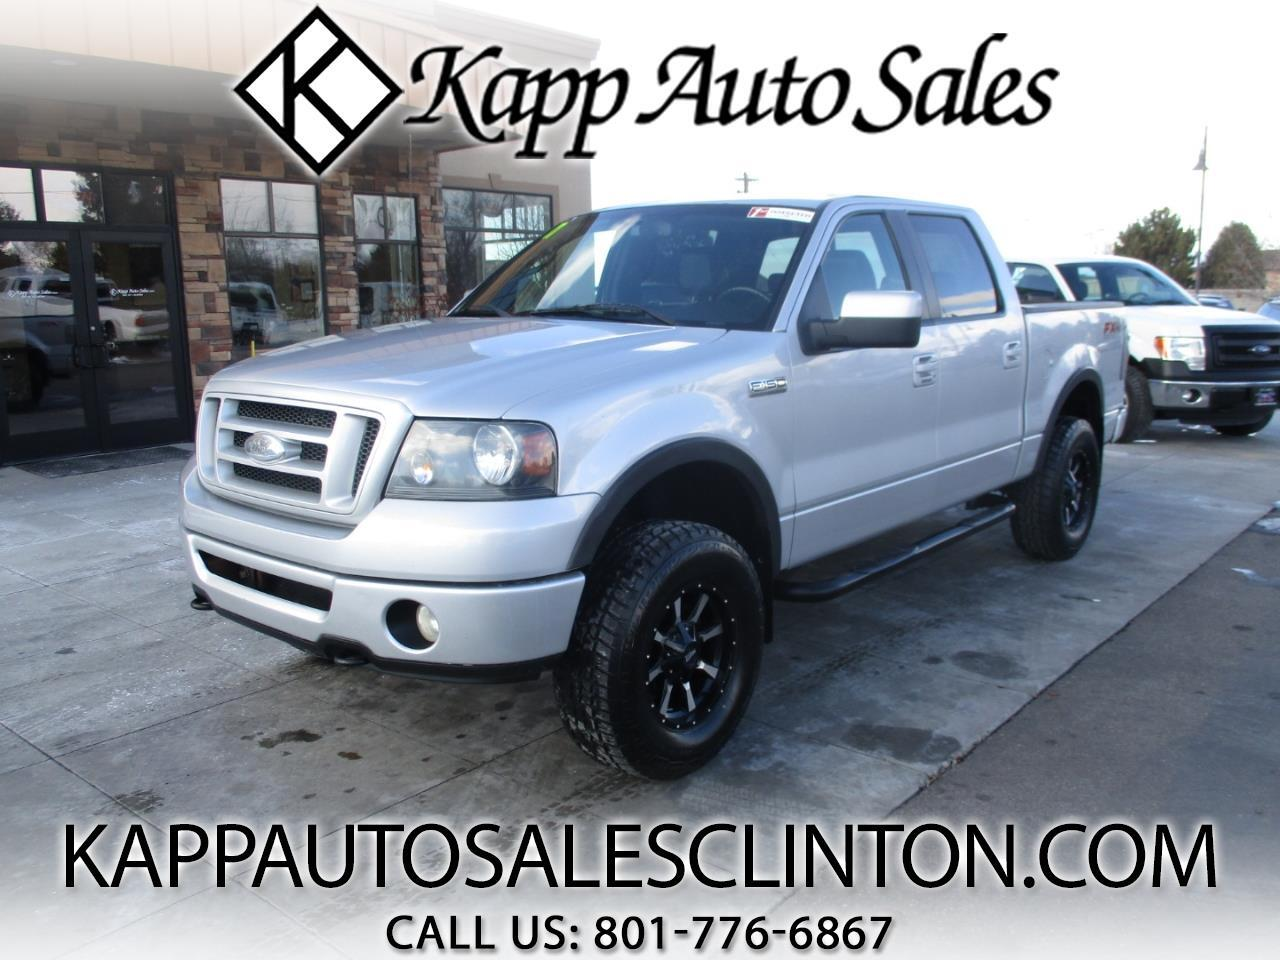 "2007 Ford F-150 4WD SuperCrew 139"" FX4"